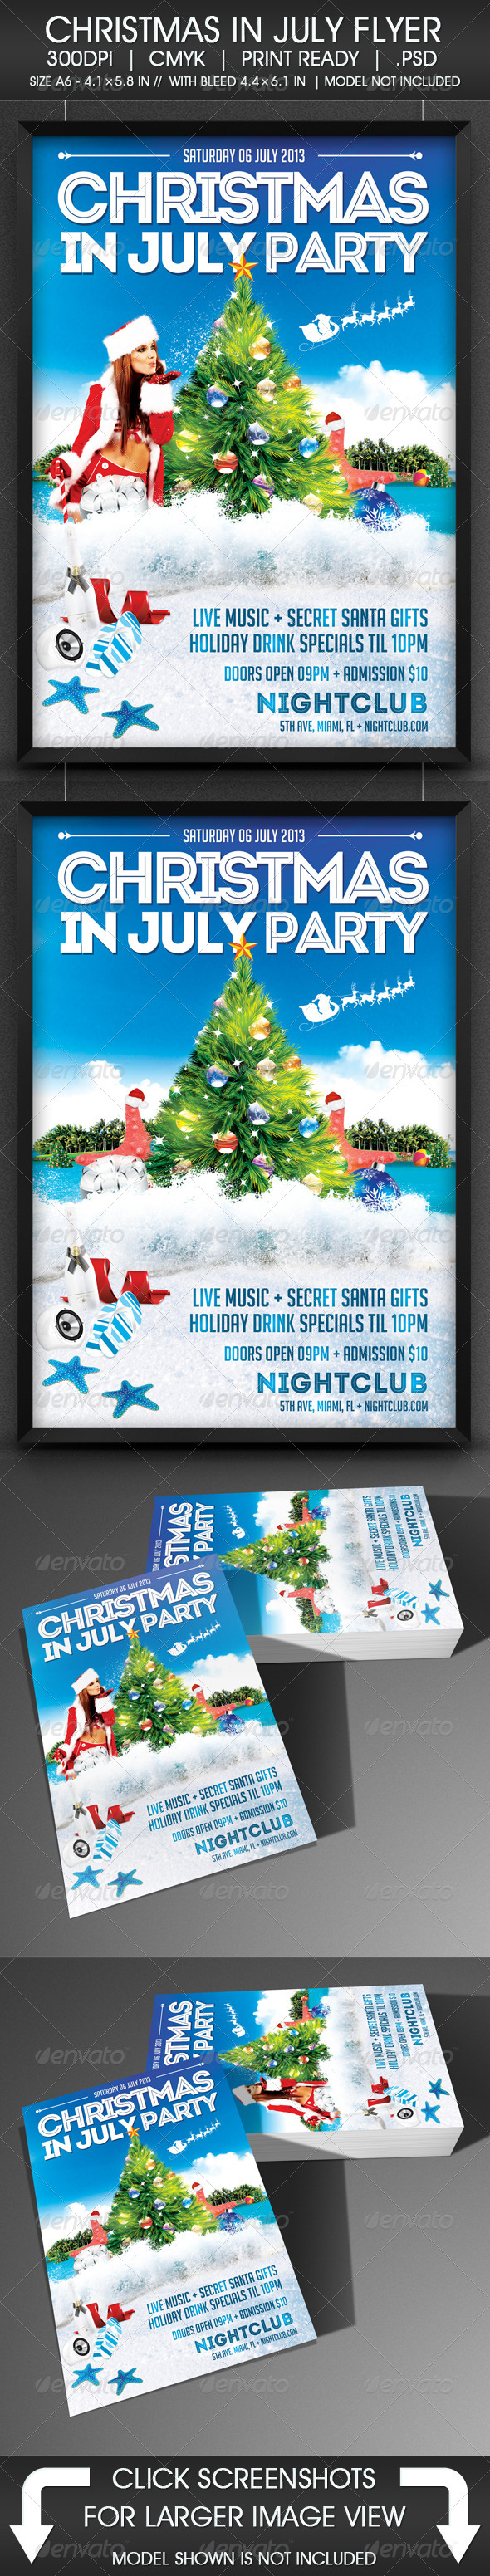 Christmas In July Flyer by ViralLegacy GraphicRiver